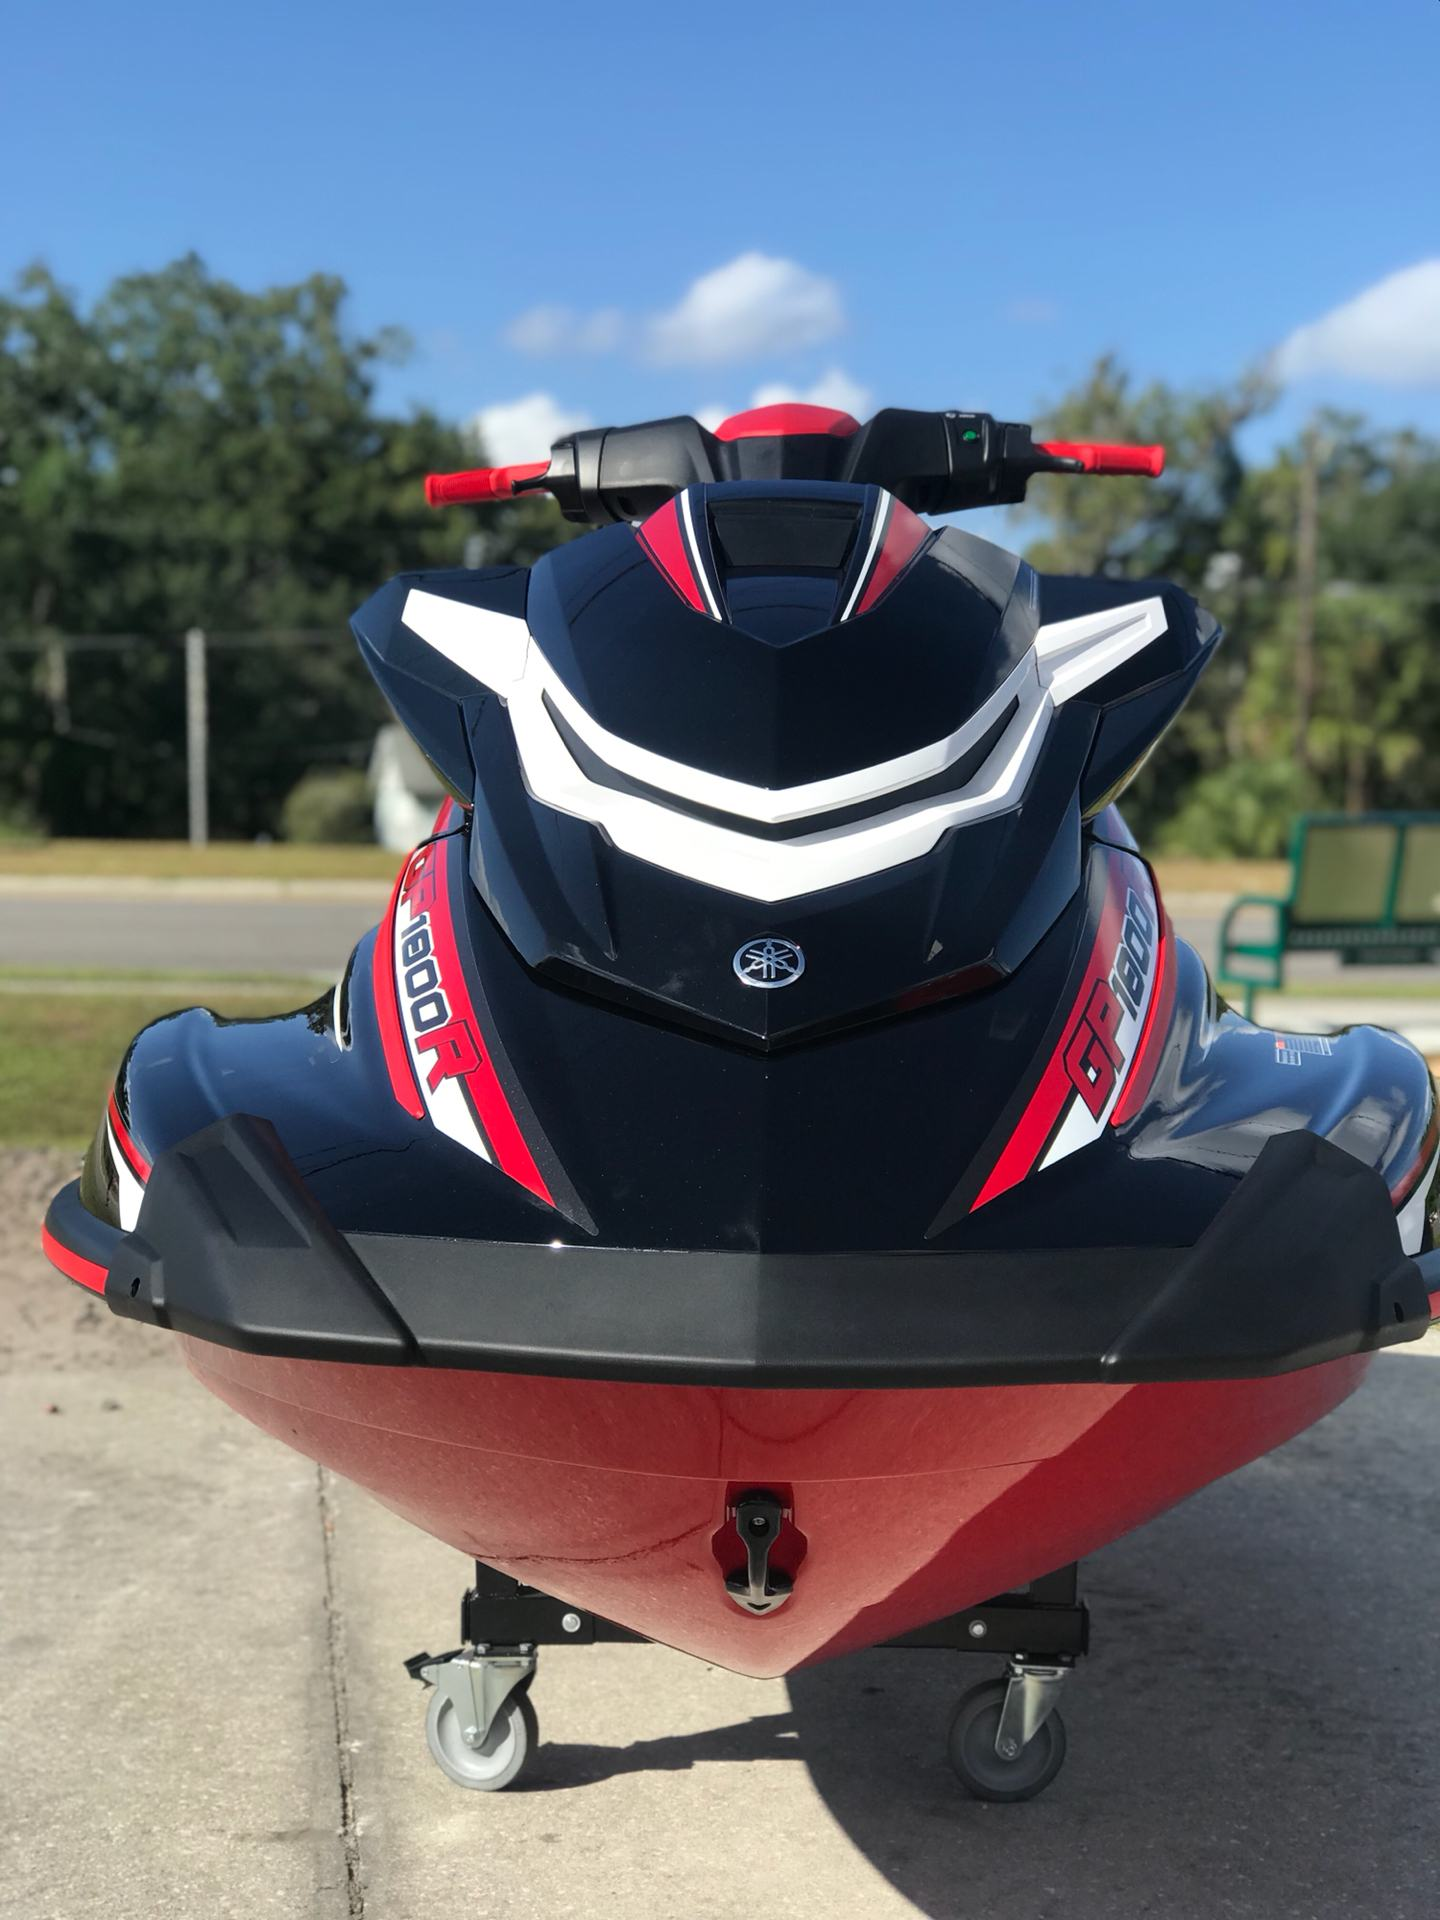 2019 Yamaha GP1800R in Orlando, Florida - Photo 3